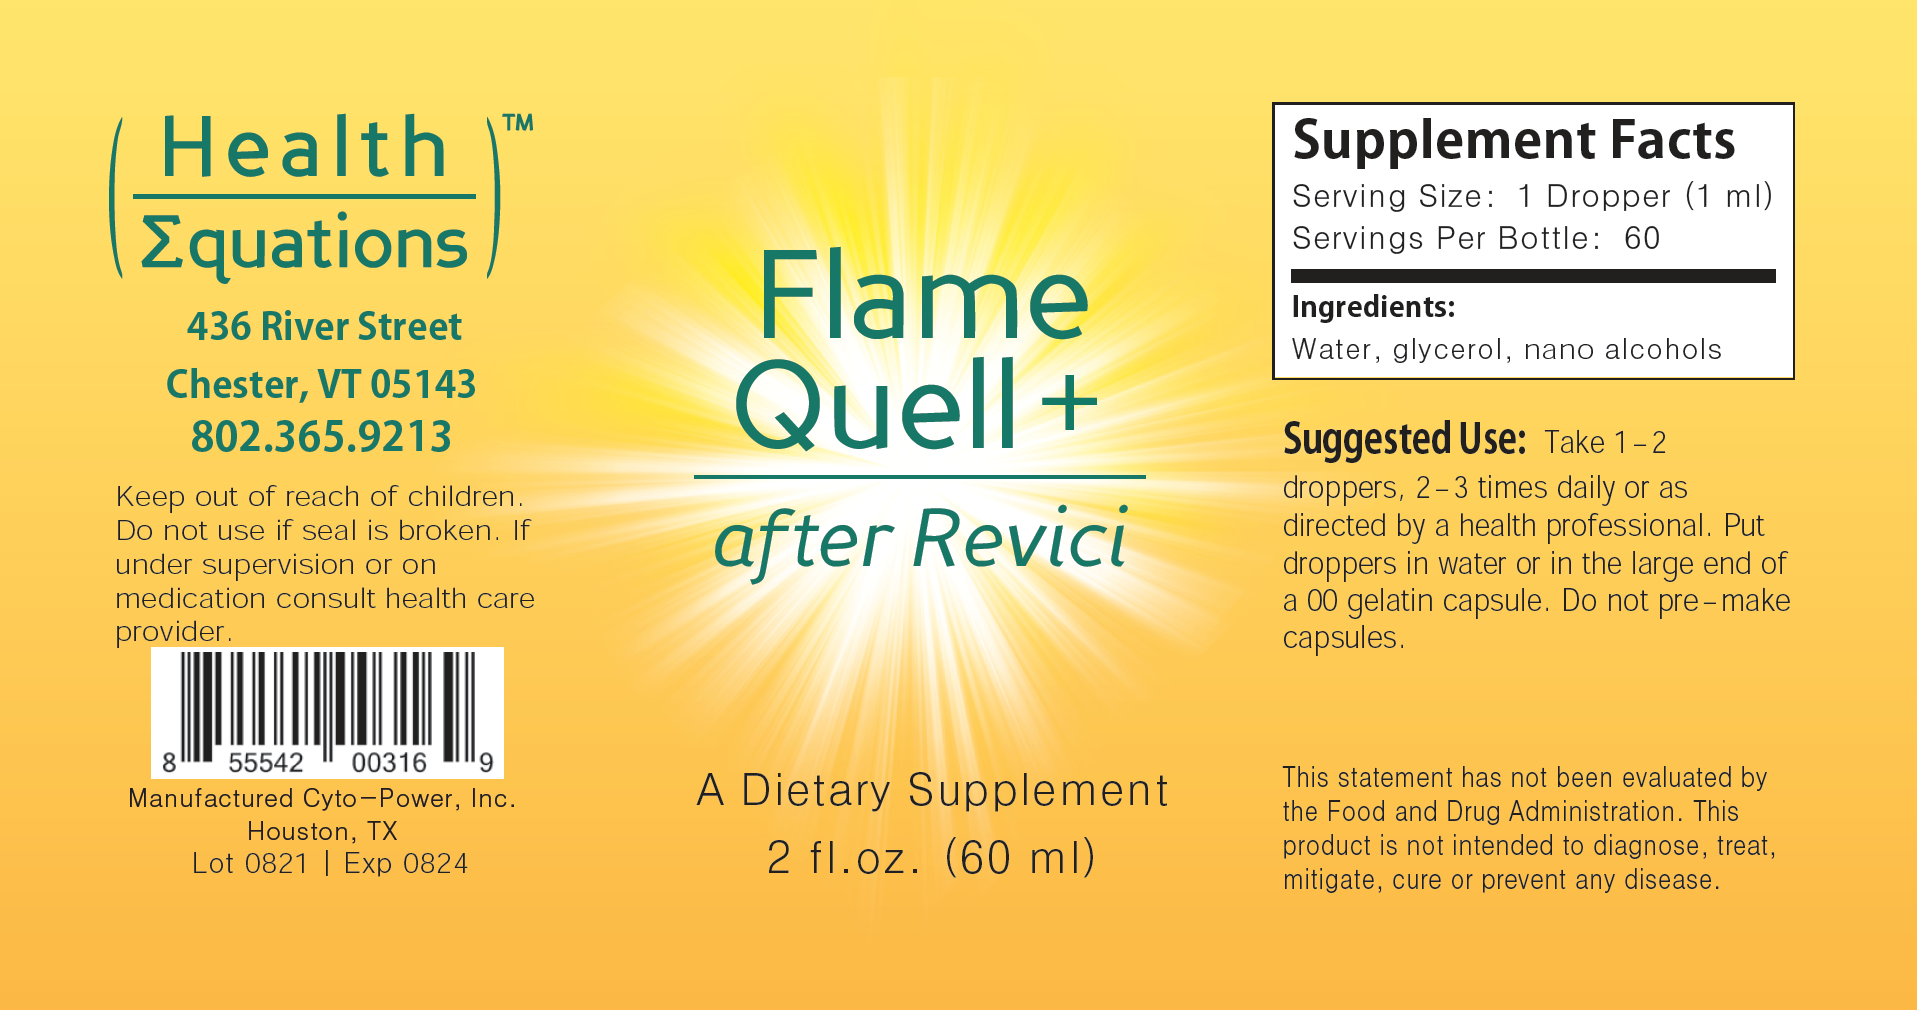 Flame Quell Plus label image by Health Equations